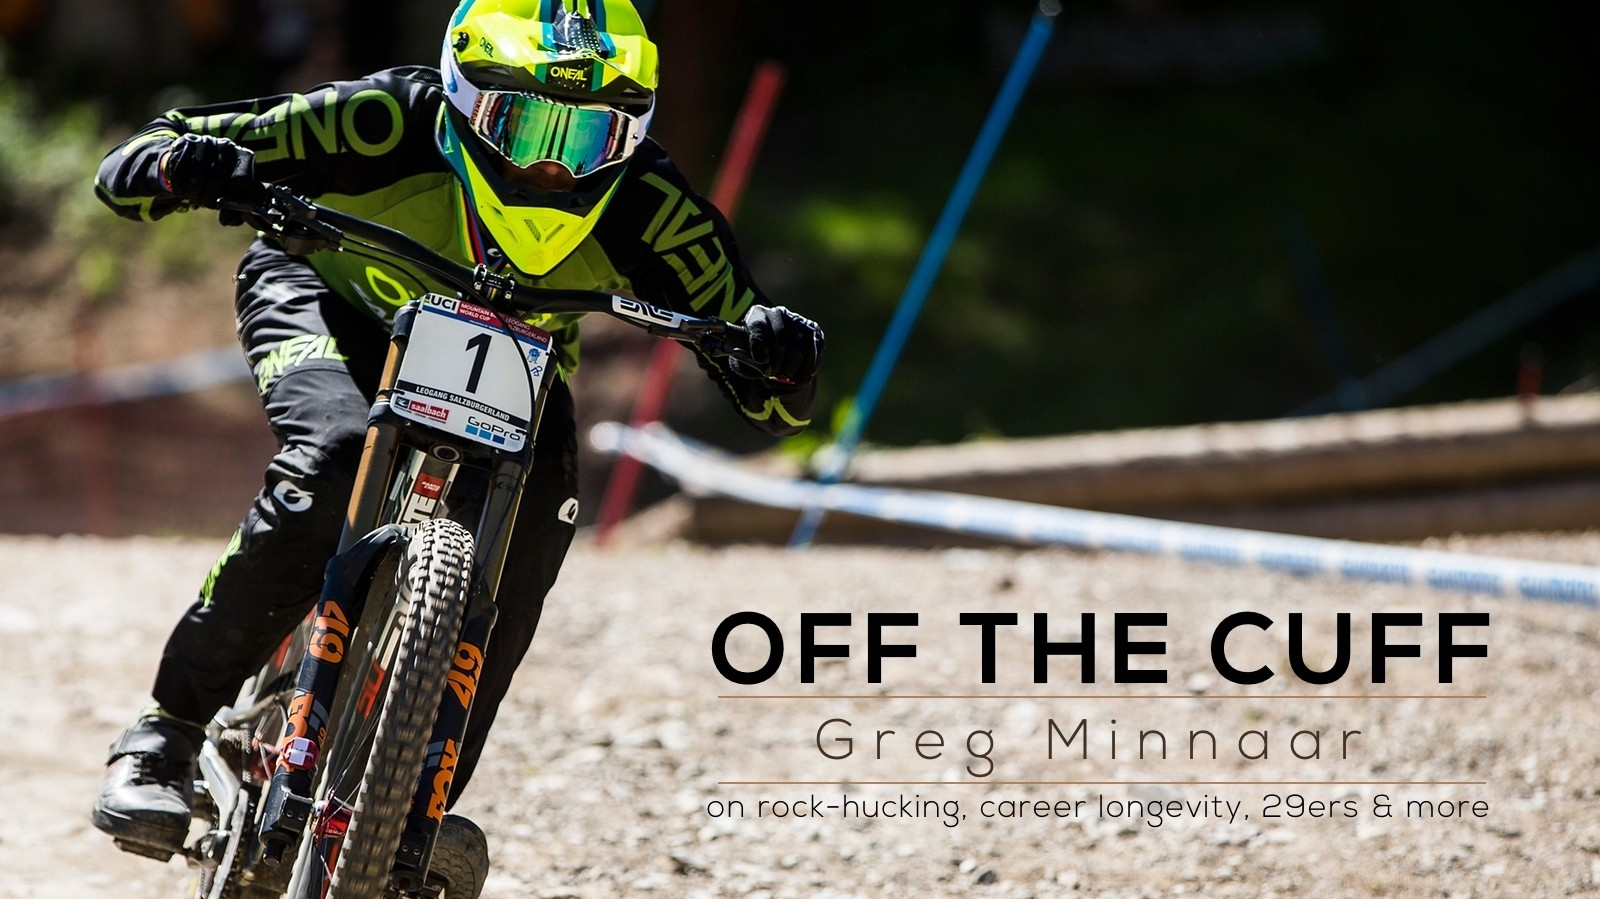 Off the Cuff - Greg Minnaar